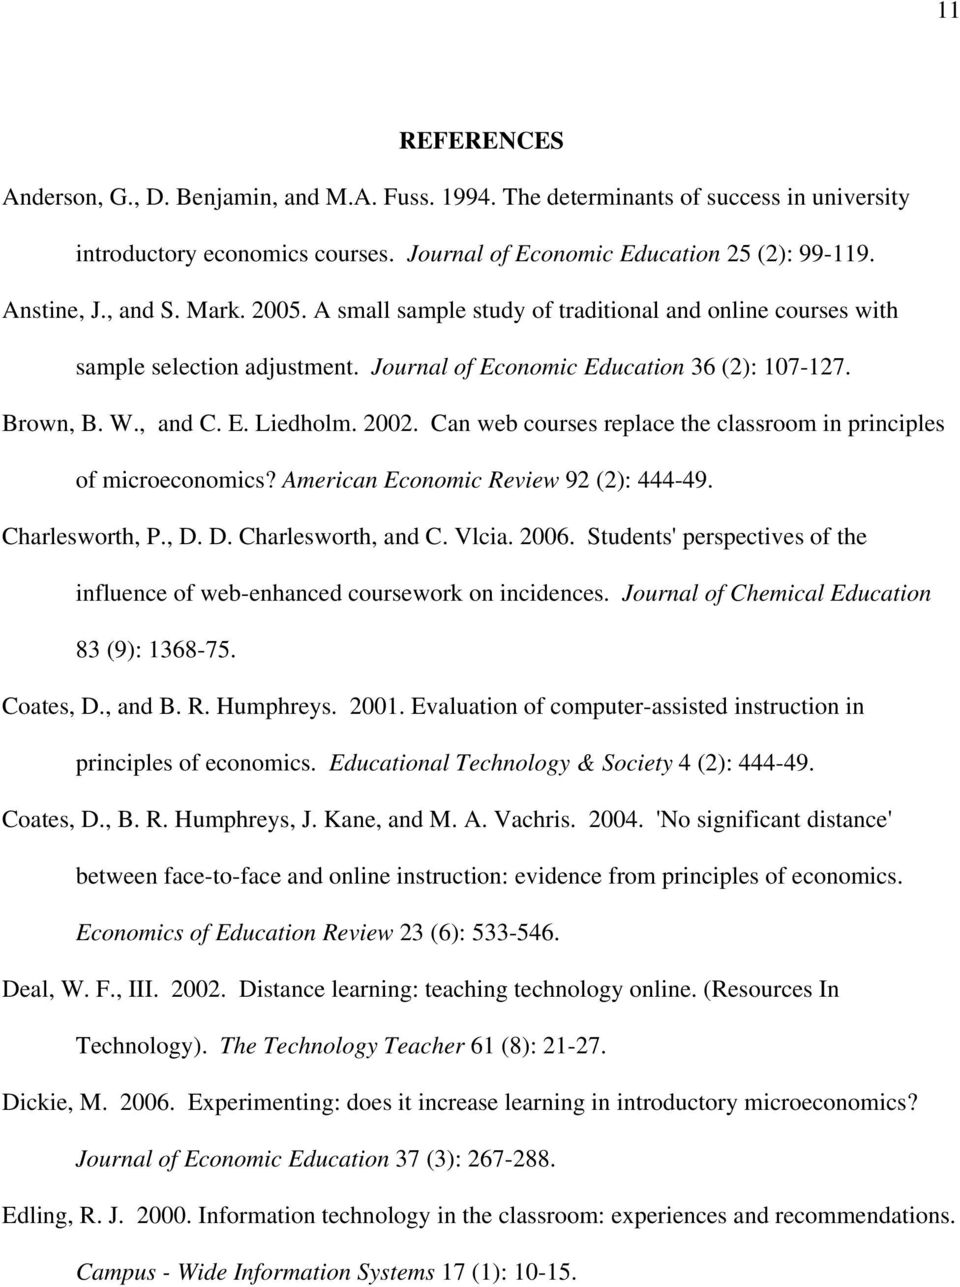 Can web courses replace the classroom in principles of microeconomics? American Economic Review 92 (2): 444-49. Charlesworth, P., D. D. Charlesworth, and C. Vlcia. 2006.